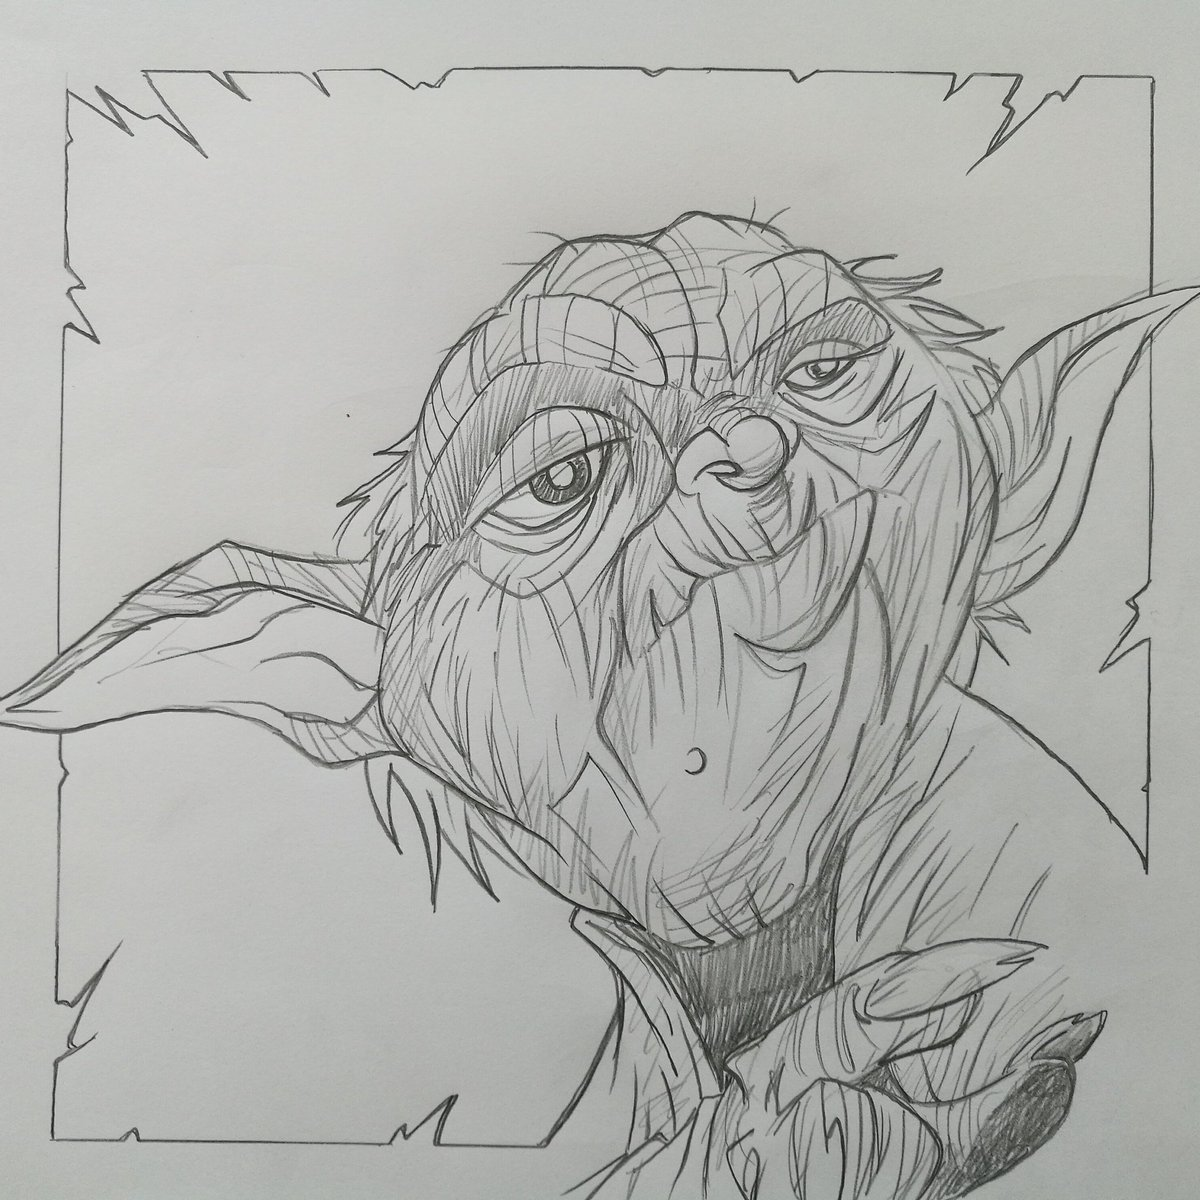 #ifumissedit from yesterday&#39;s SKETCH ACTION by me #yoda #Starwars #jedi #lukeskywalker<br>http://pic.twitter.com/aoDuBuAuCW